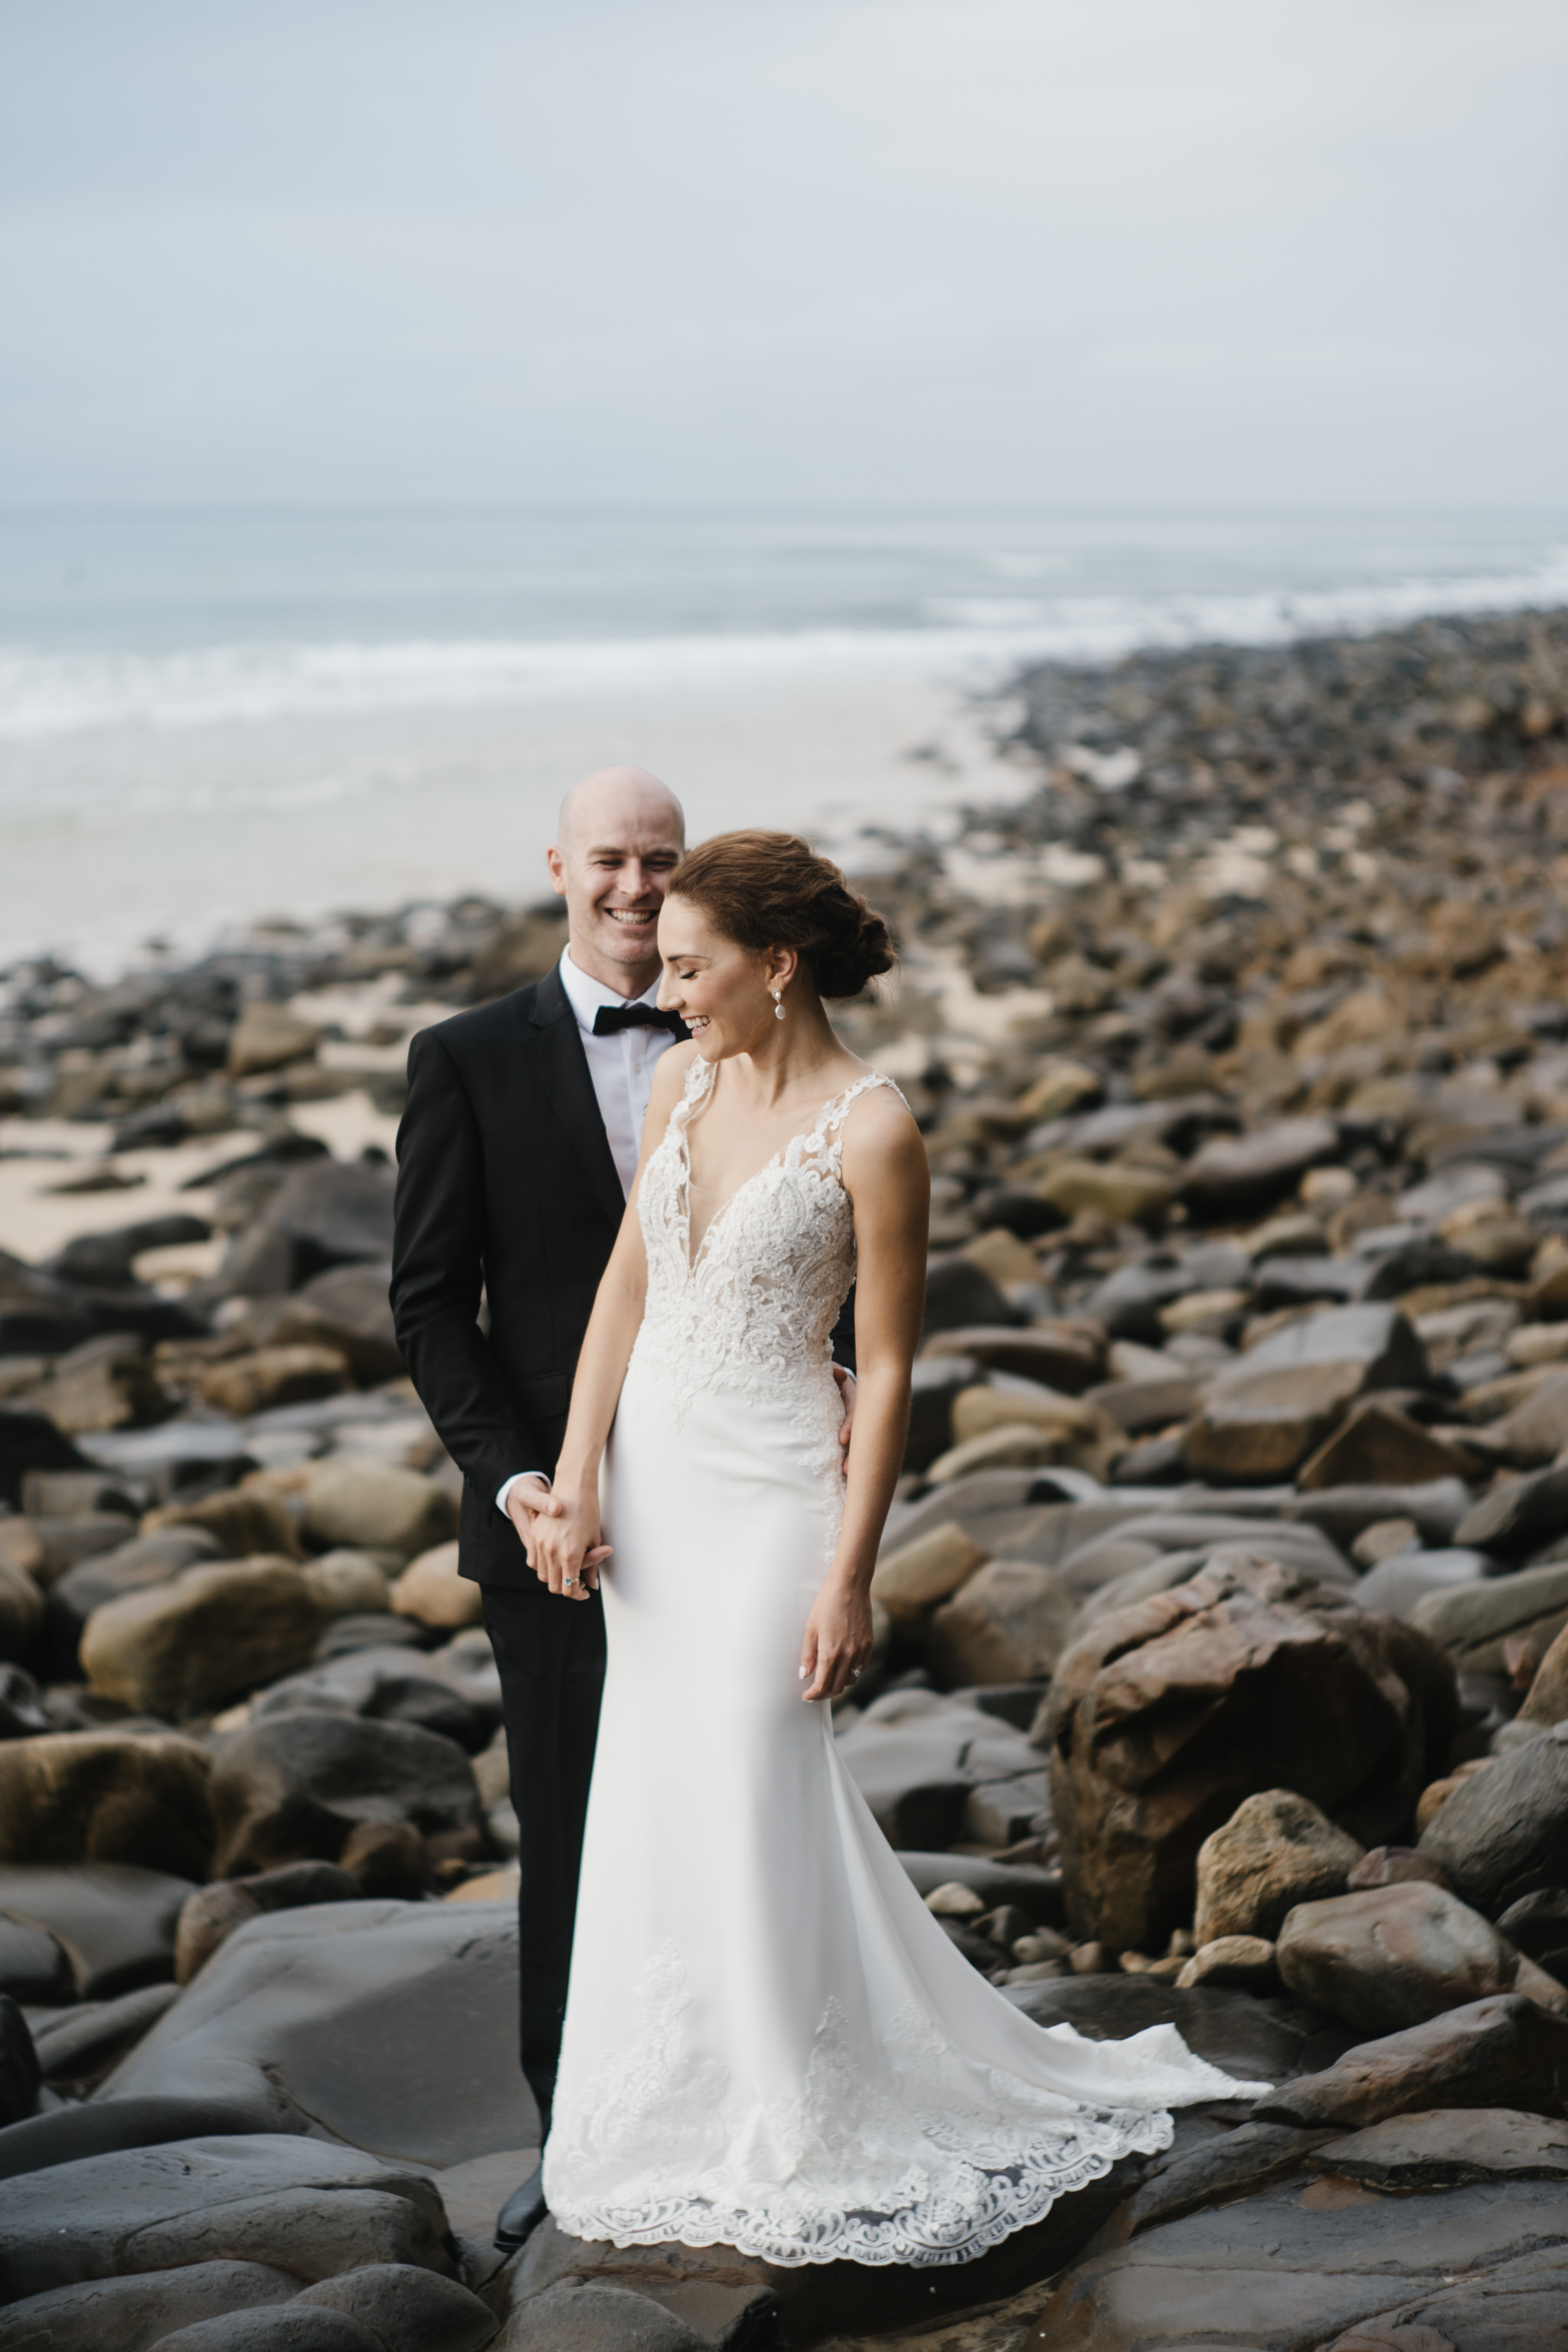 Jacquie and Jon Wedding EPHEMERAL CREATIVE Noosa wedding bride and groom